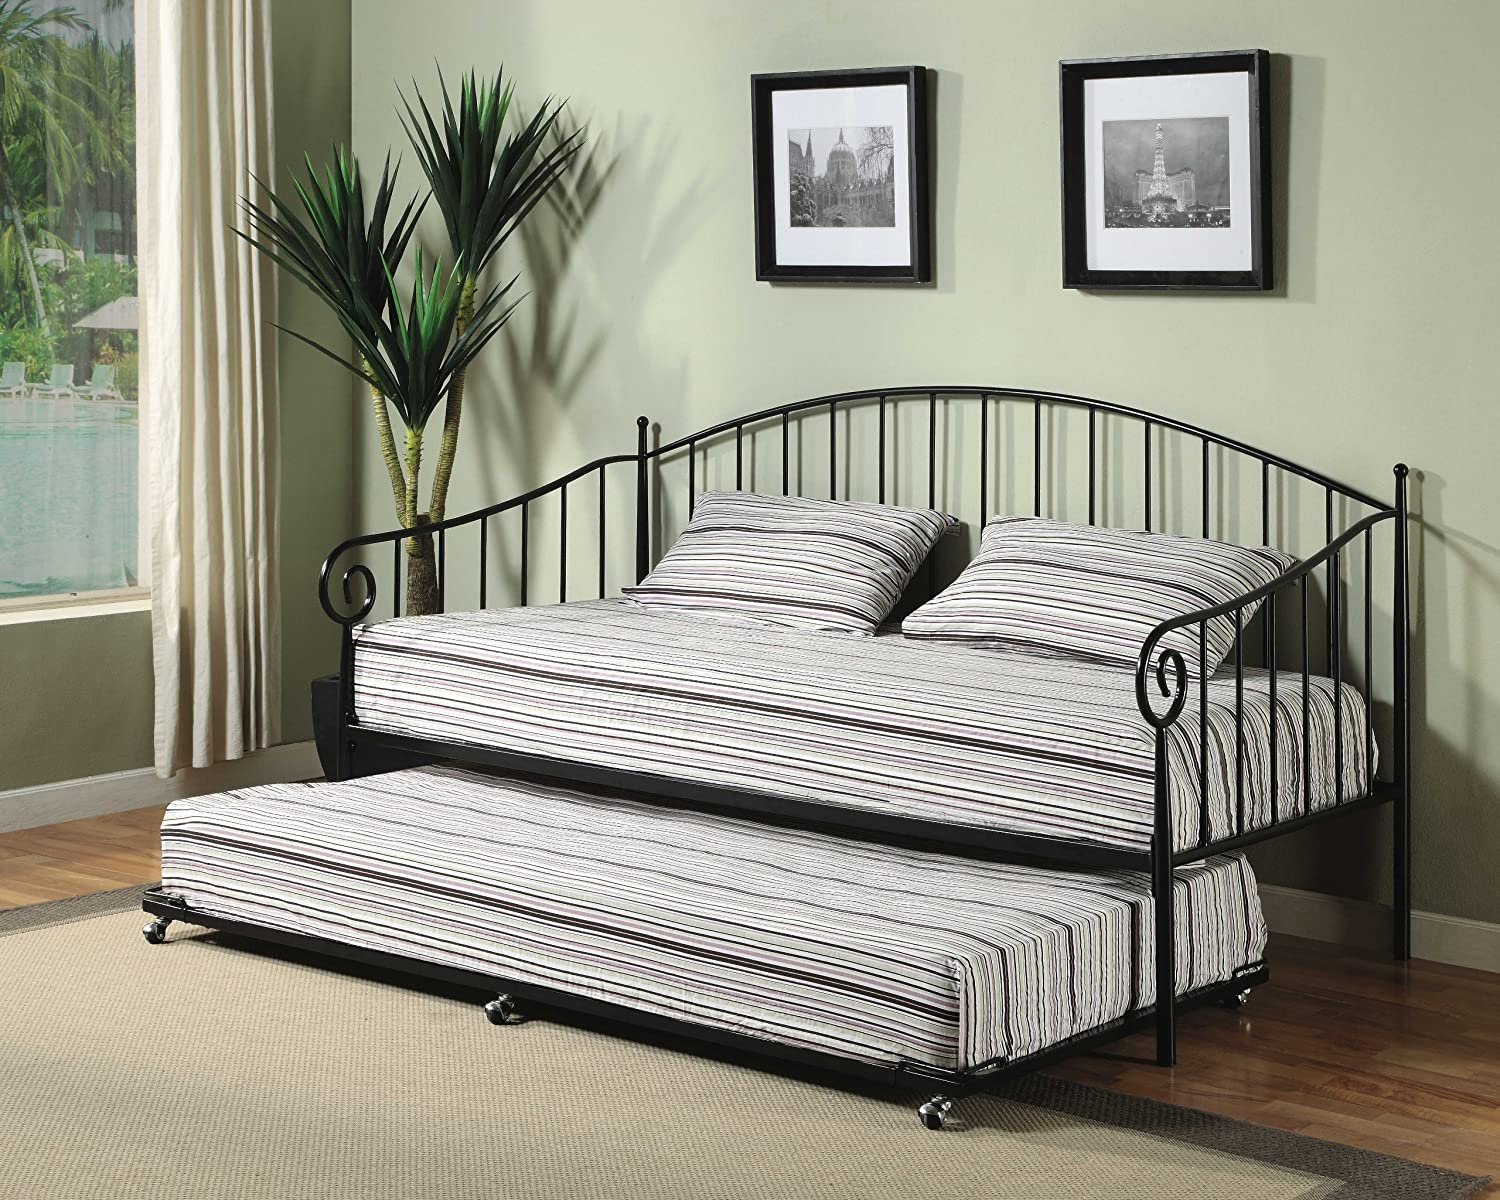 Amazon.com: Kings Brand Furniture Matt Black Metal Twin Size Day Bed ...